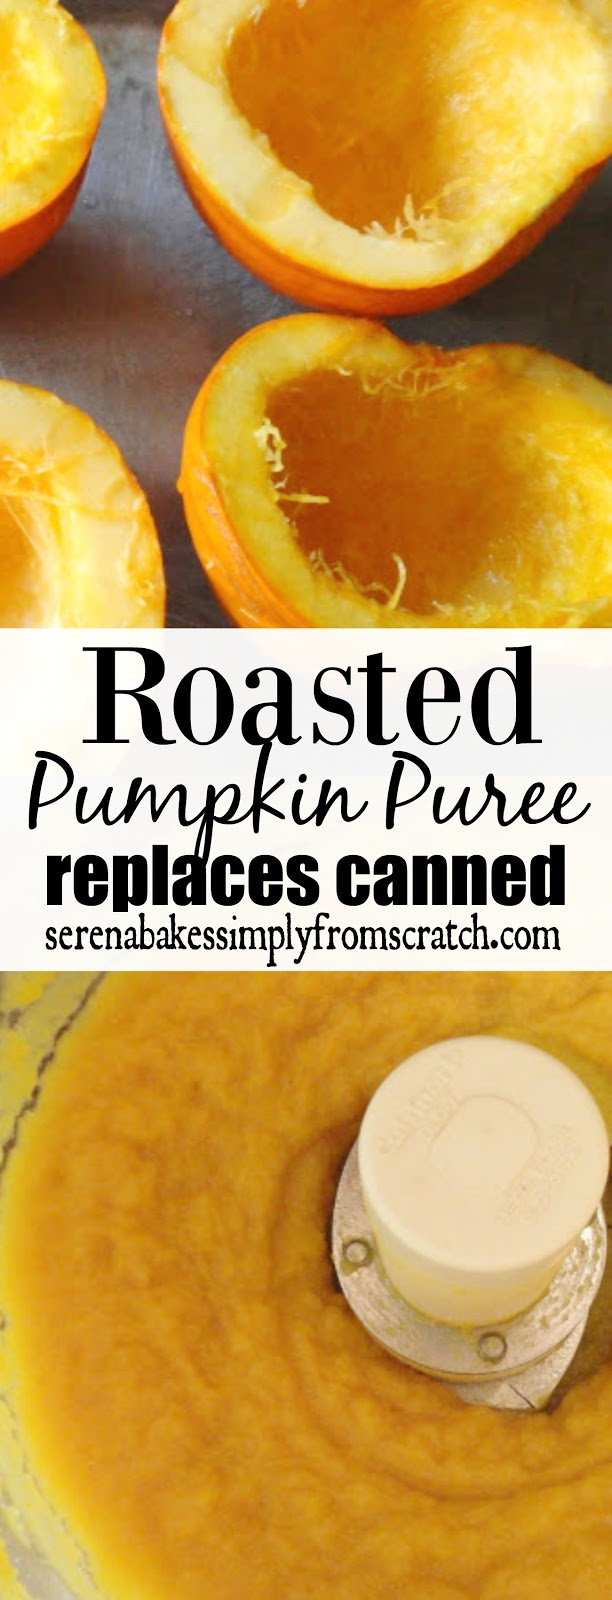 Roasted Pumpkin Puree to use cup for cup instead of canned. serenabakessimplyfromscratch.com